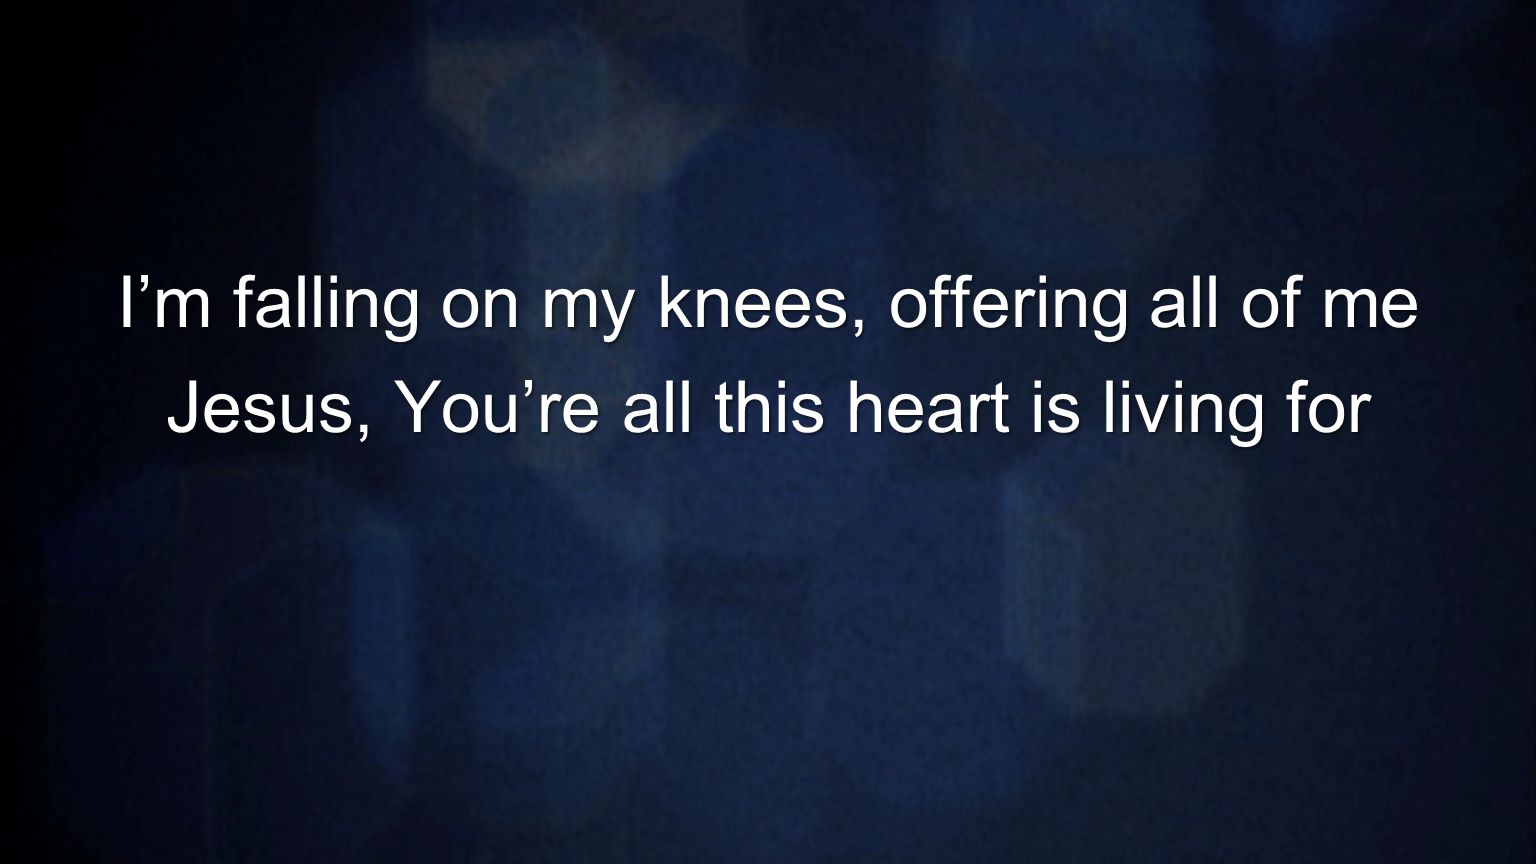 I'm falling on my knees, offering all of me Jesus, You're all this heart is living for